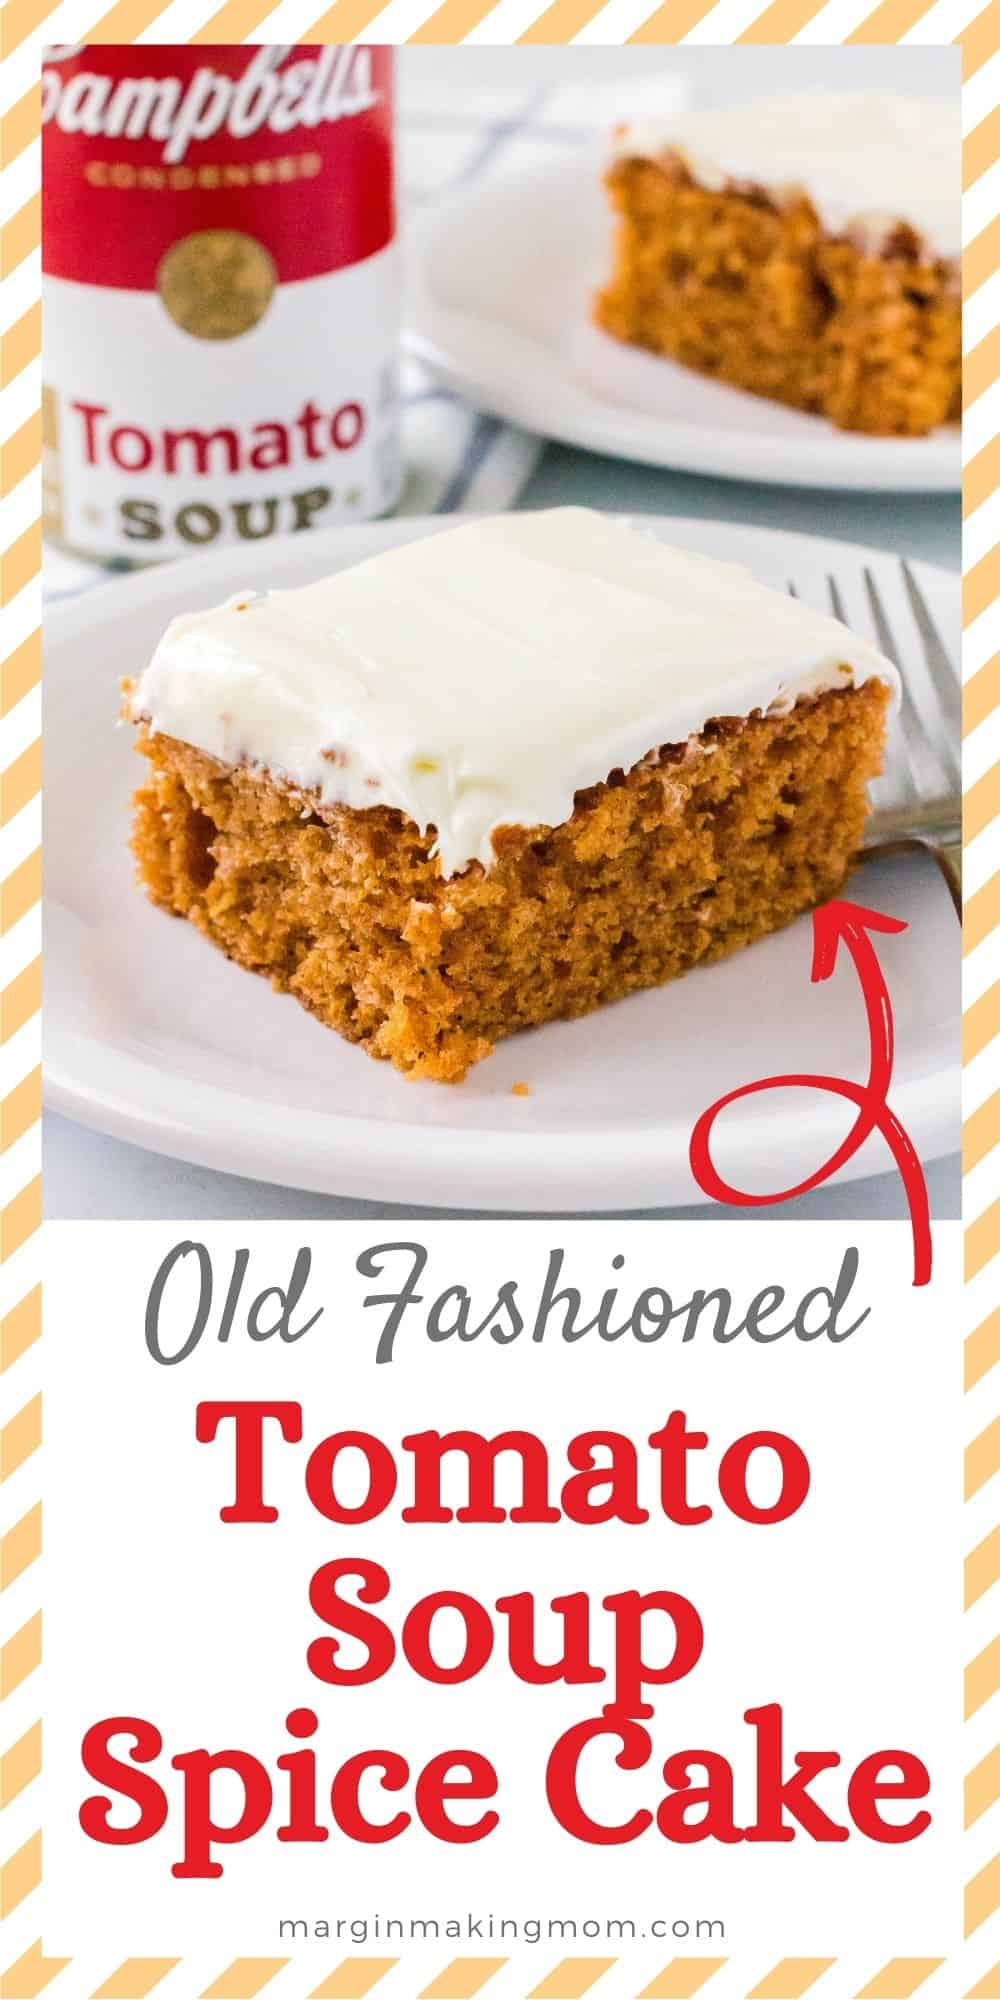 a slice of tomato soup spice cake on a white plate with a can of soup and another slice of cake in the background